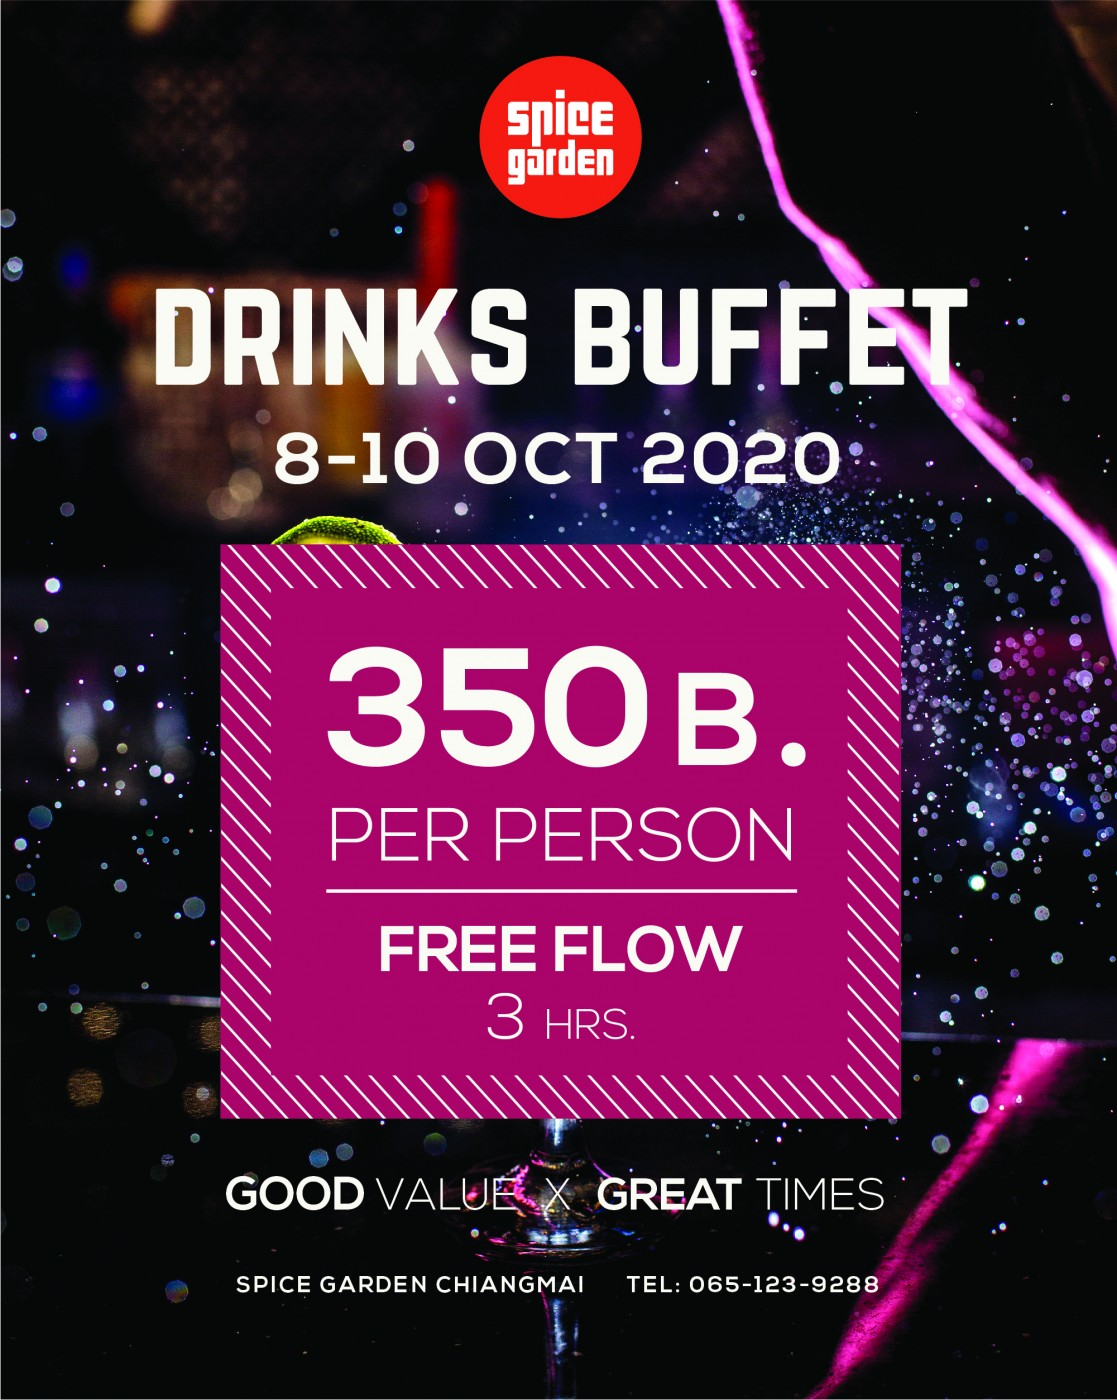 Drink Buffet 8-10 Oct 2020